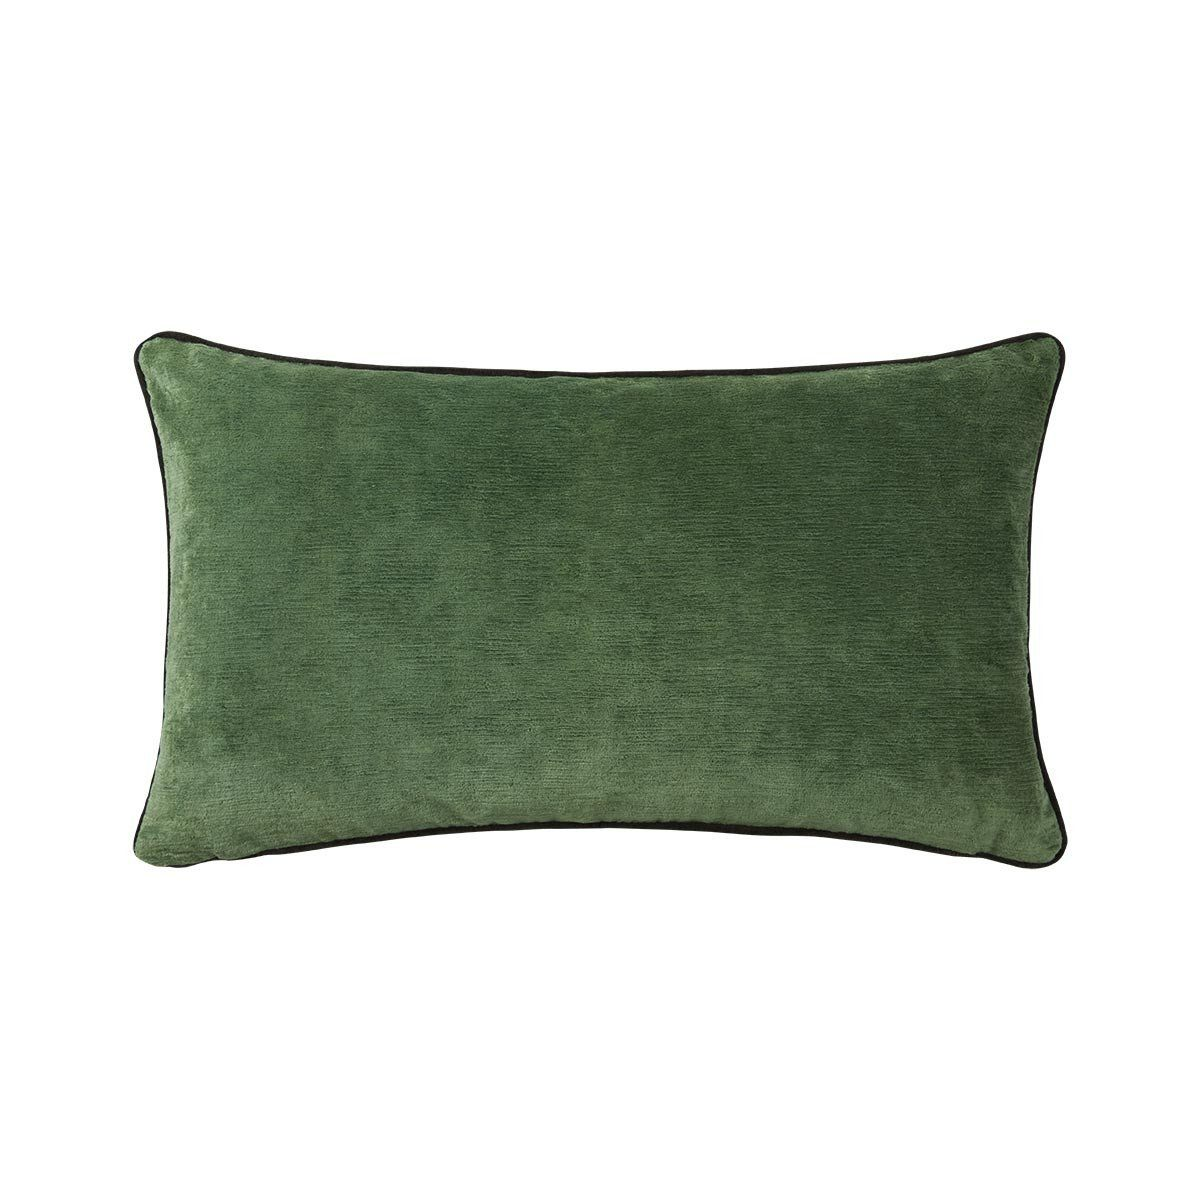 Boromee Menthe Lumbar Pillow by Iosis